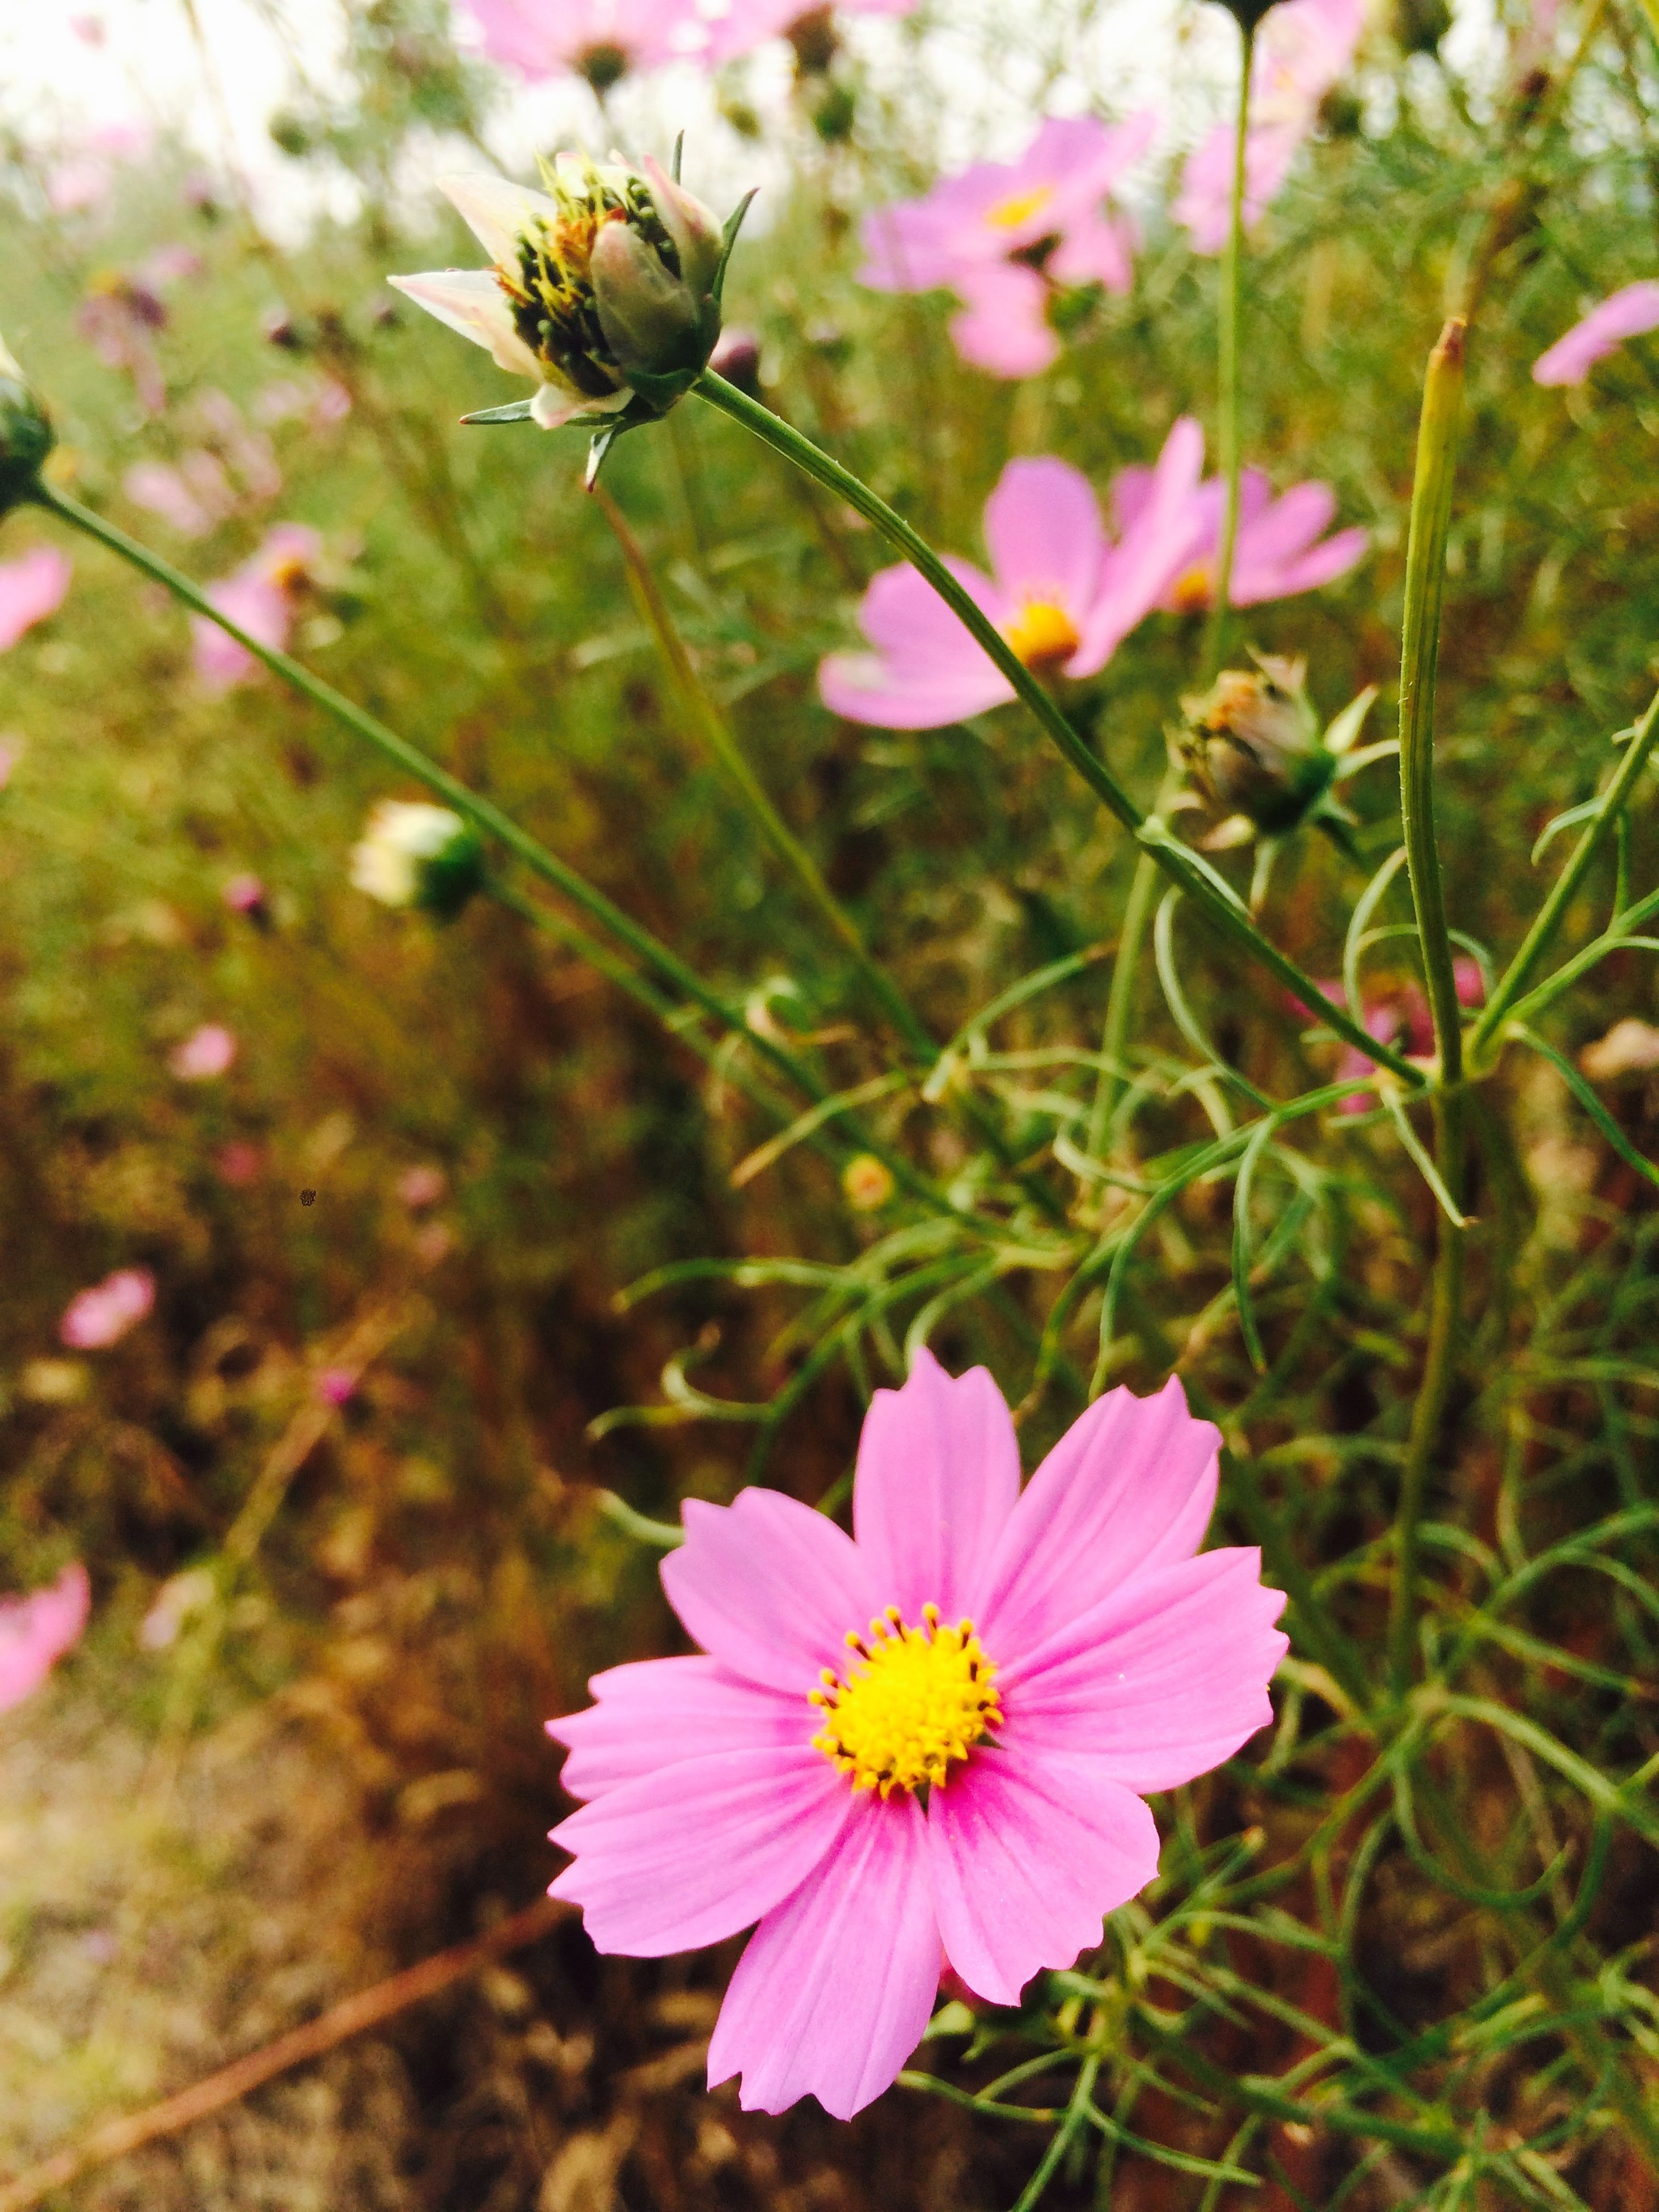 flower, freshness, petal, fragility, growth, pink color, flower head, beauty in nature, blooming, focus on foreground, nature, plant, close-up, in bloom, blossom, stem, pollen, day, springtime, field